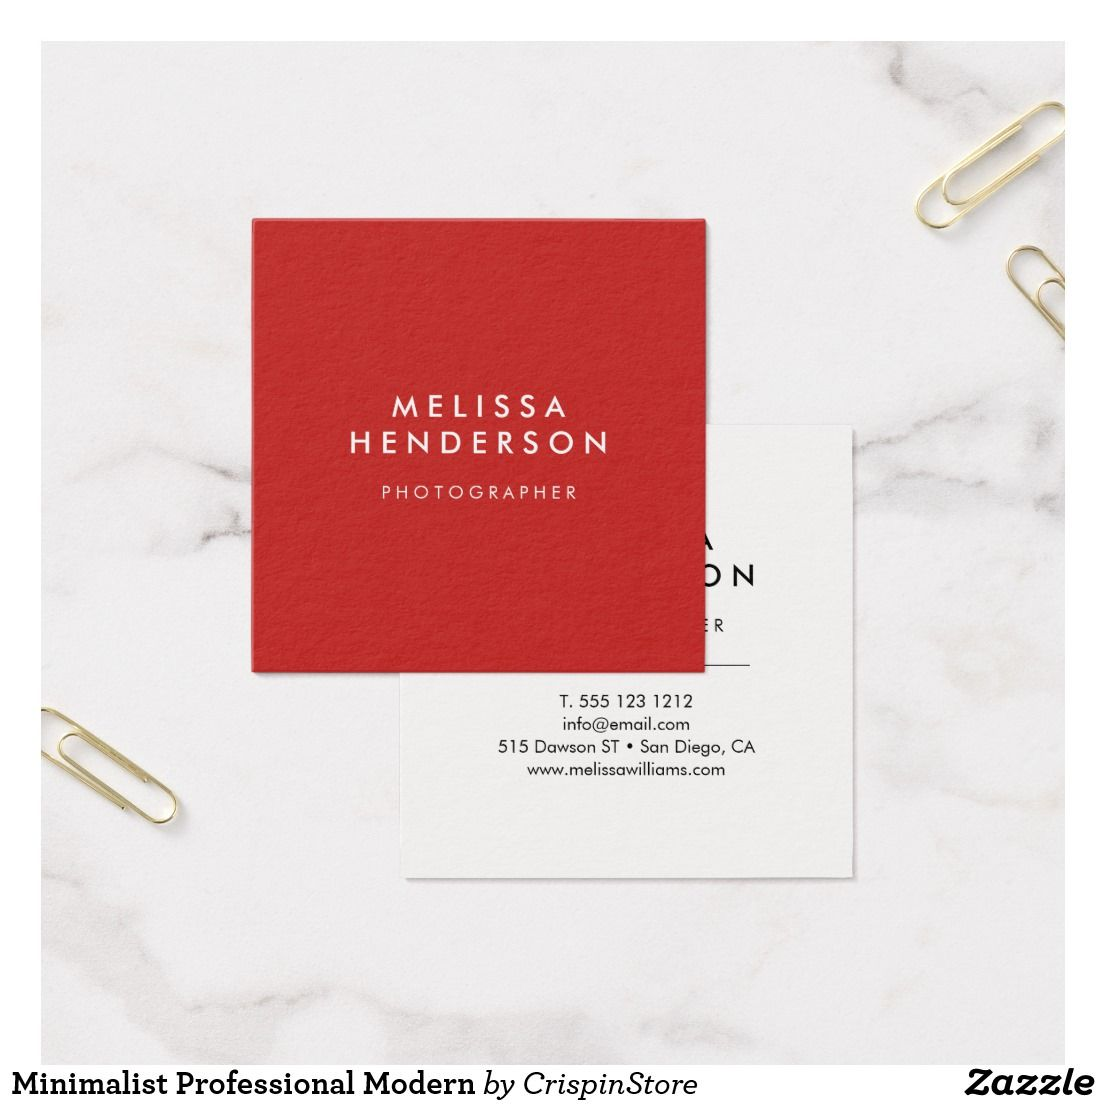 Minimalist Professional Modern Square Business Card Business Cards